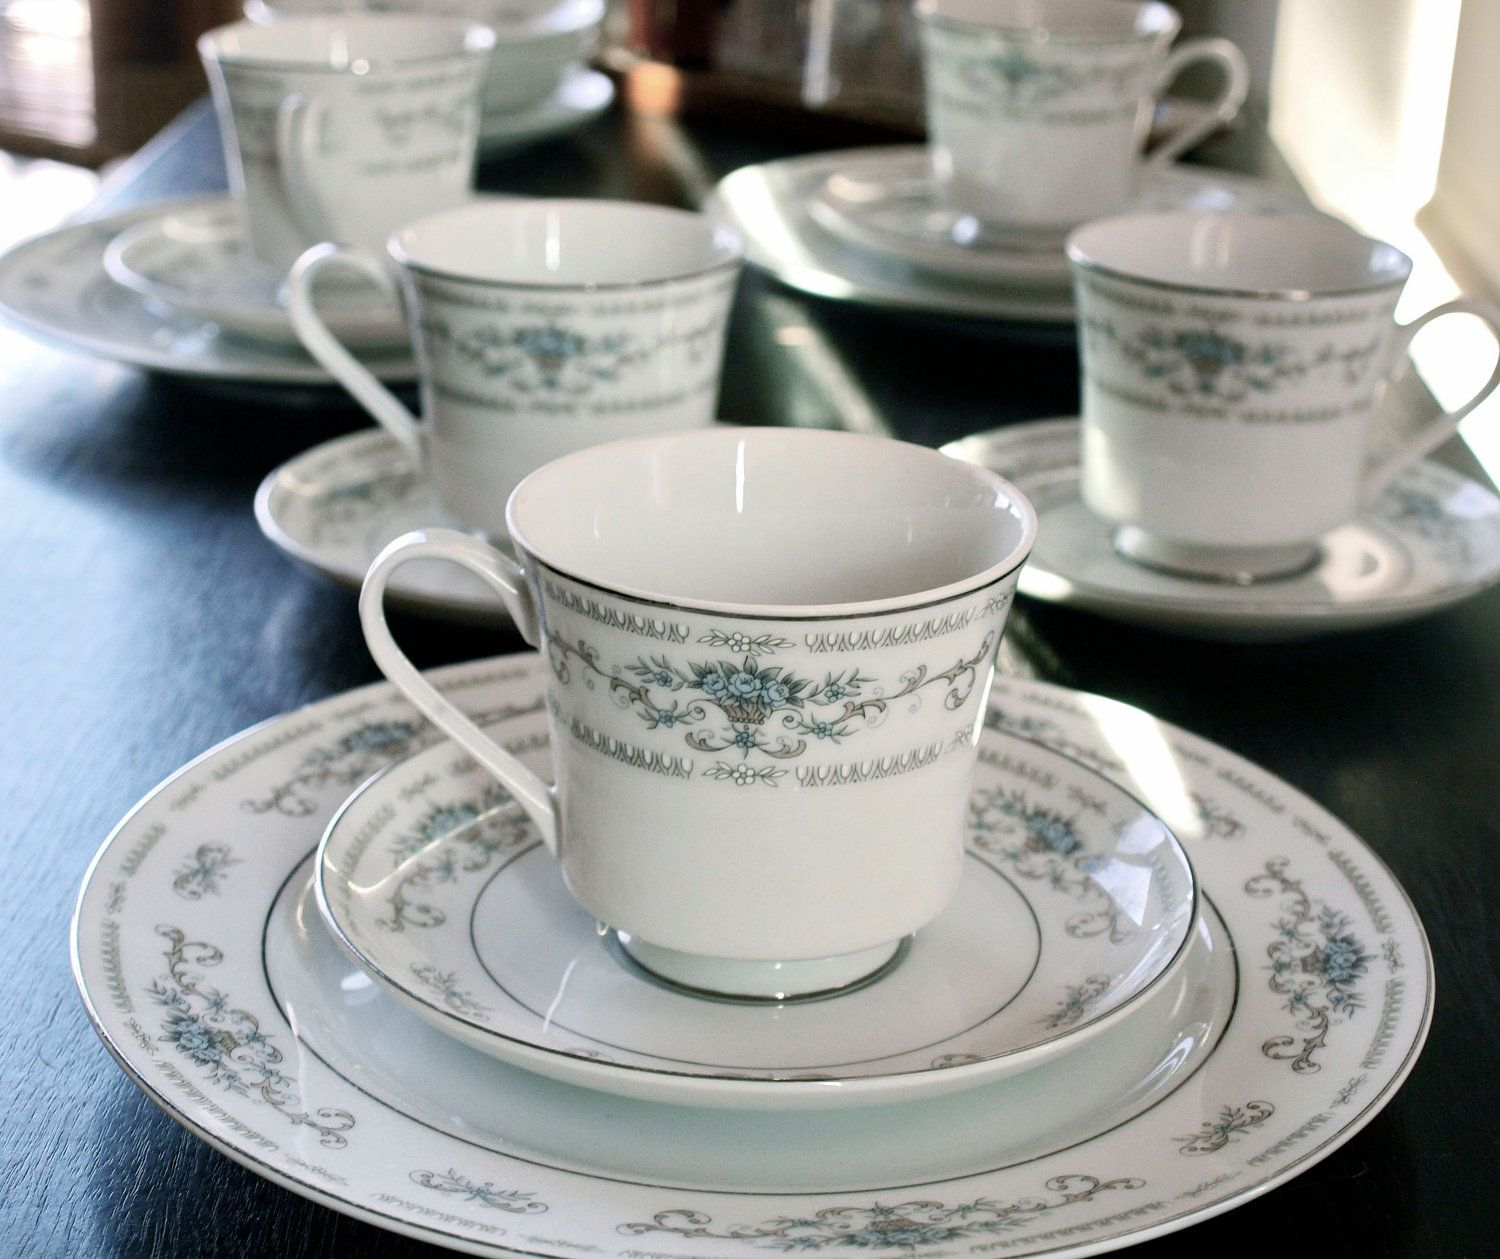 Fine China Patterns diane porcelainwade fine china of japan / 18 piece tea and